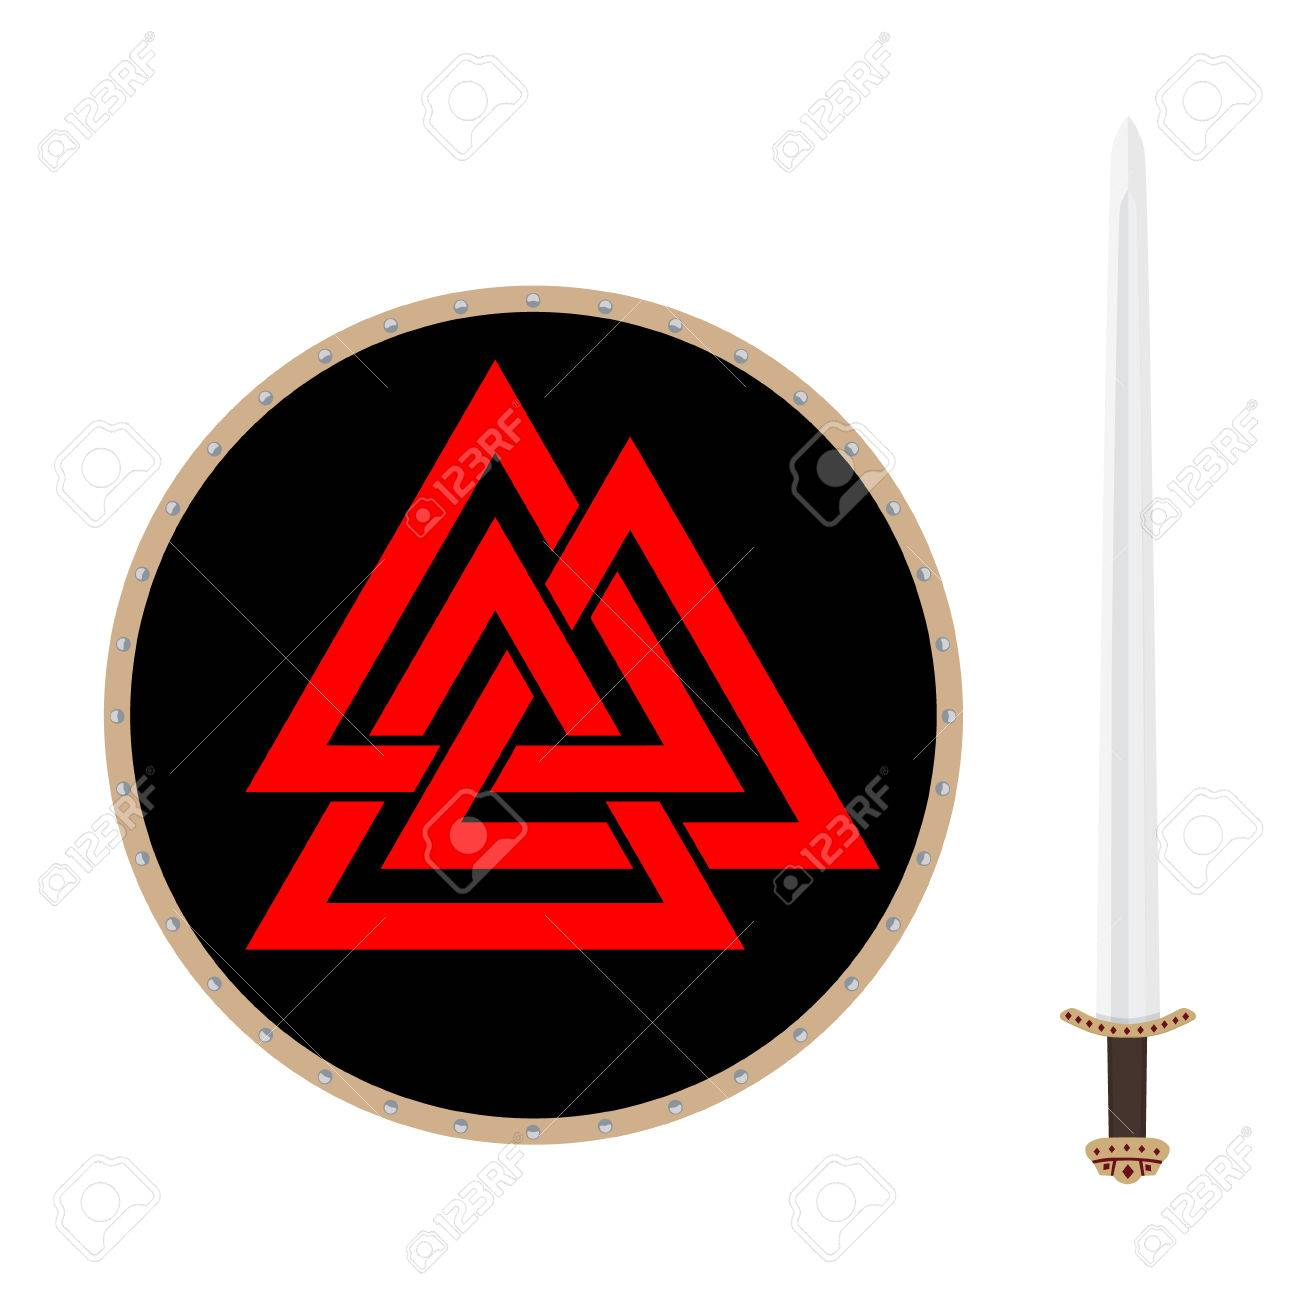 Valknut symbol of the world end of the tree yggdrasil and viking valknut symbol of the world end of the tree yggdrasil and viking sword sign of biocorpaavc